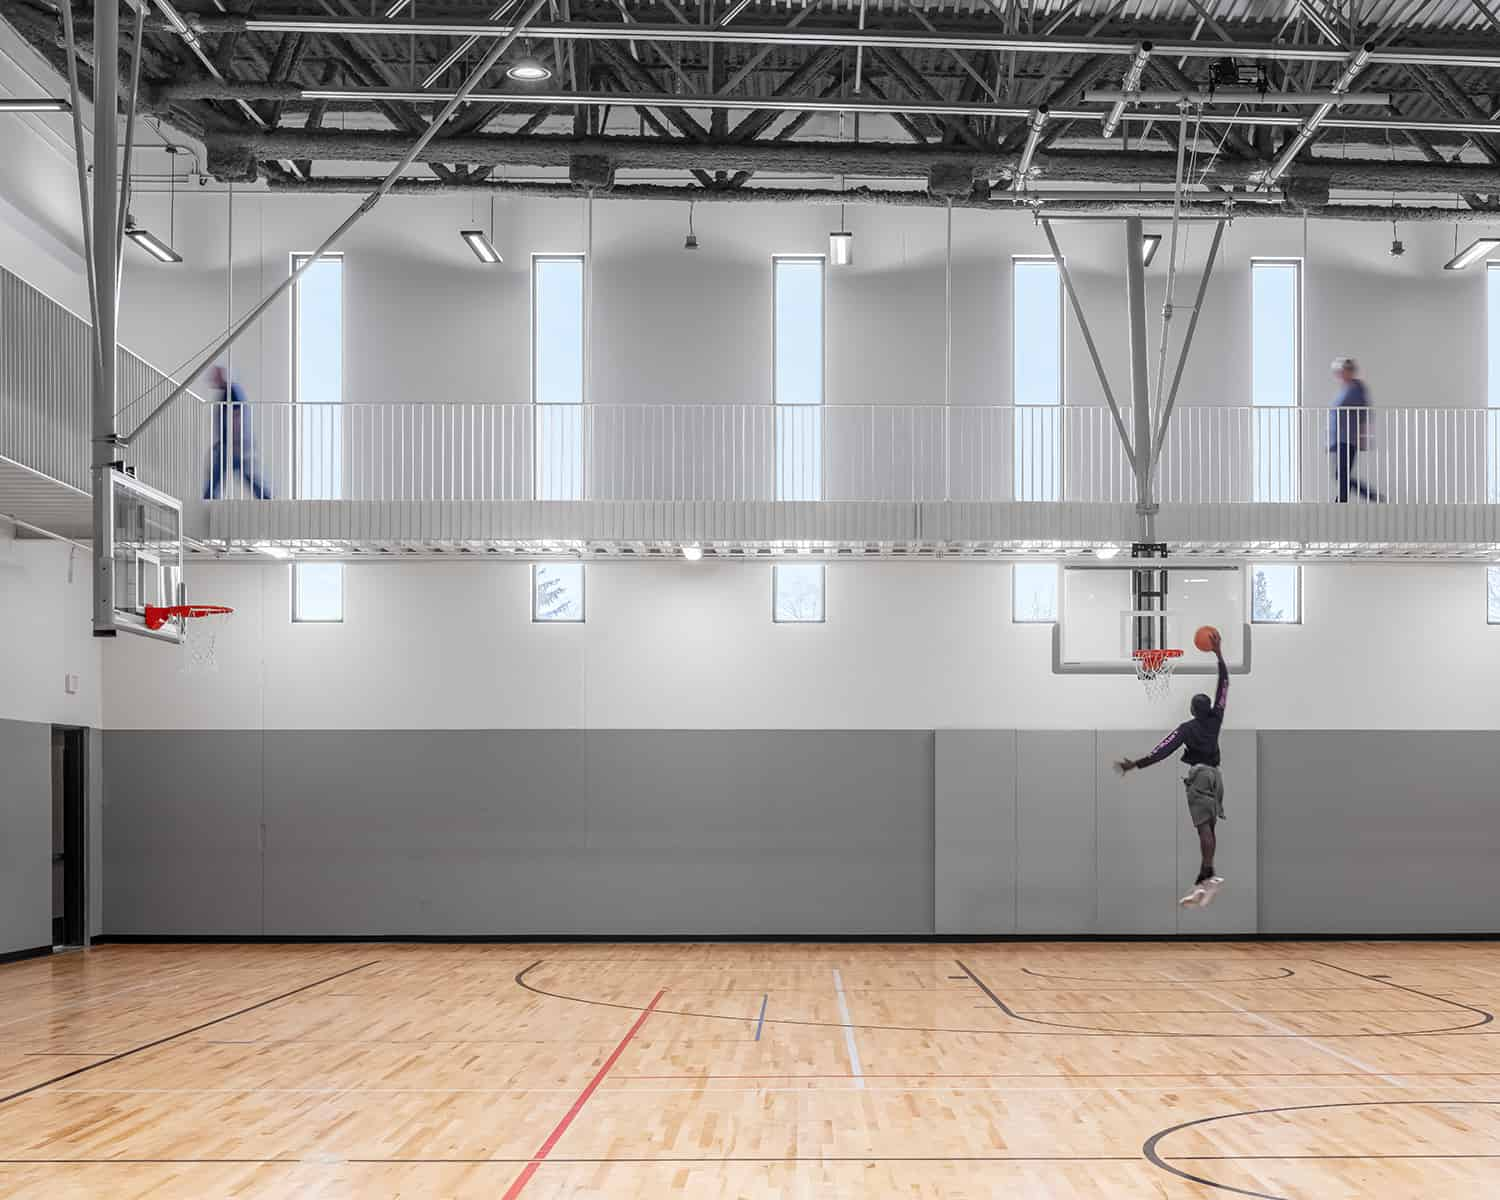 A basketball player and joggers utilize the open gym and track spaces simultaneously.